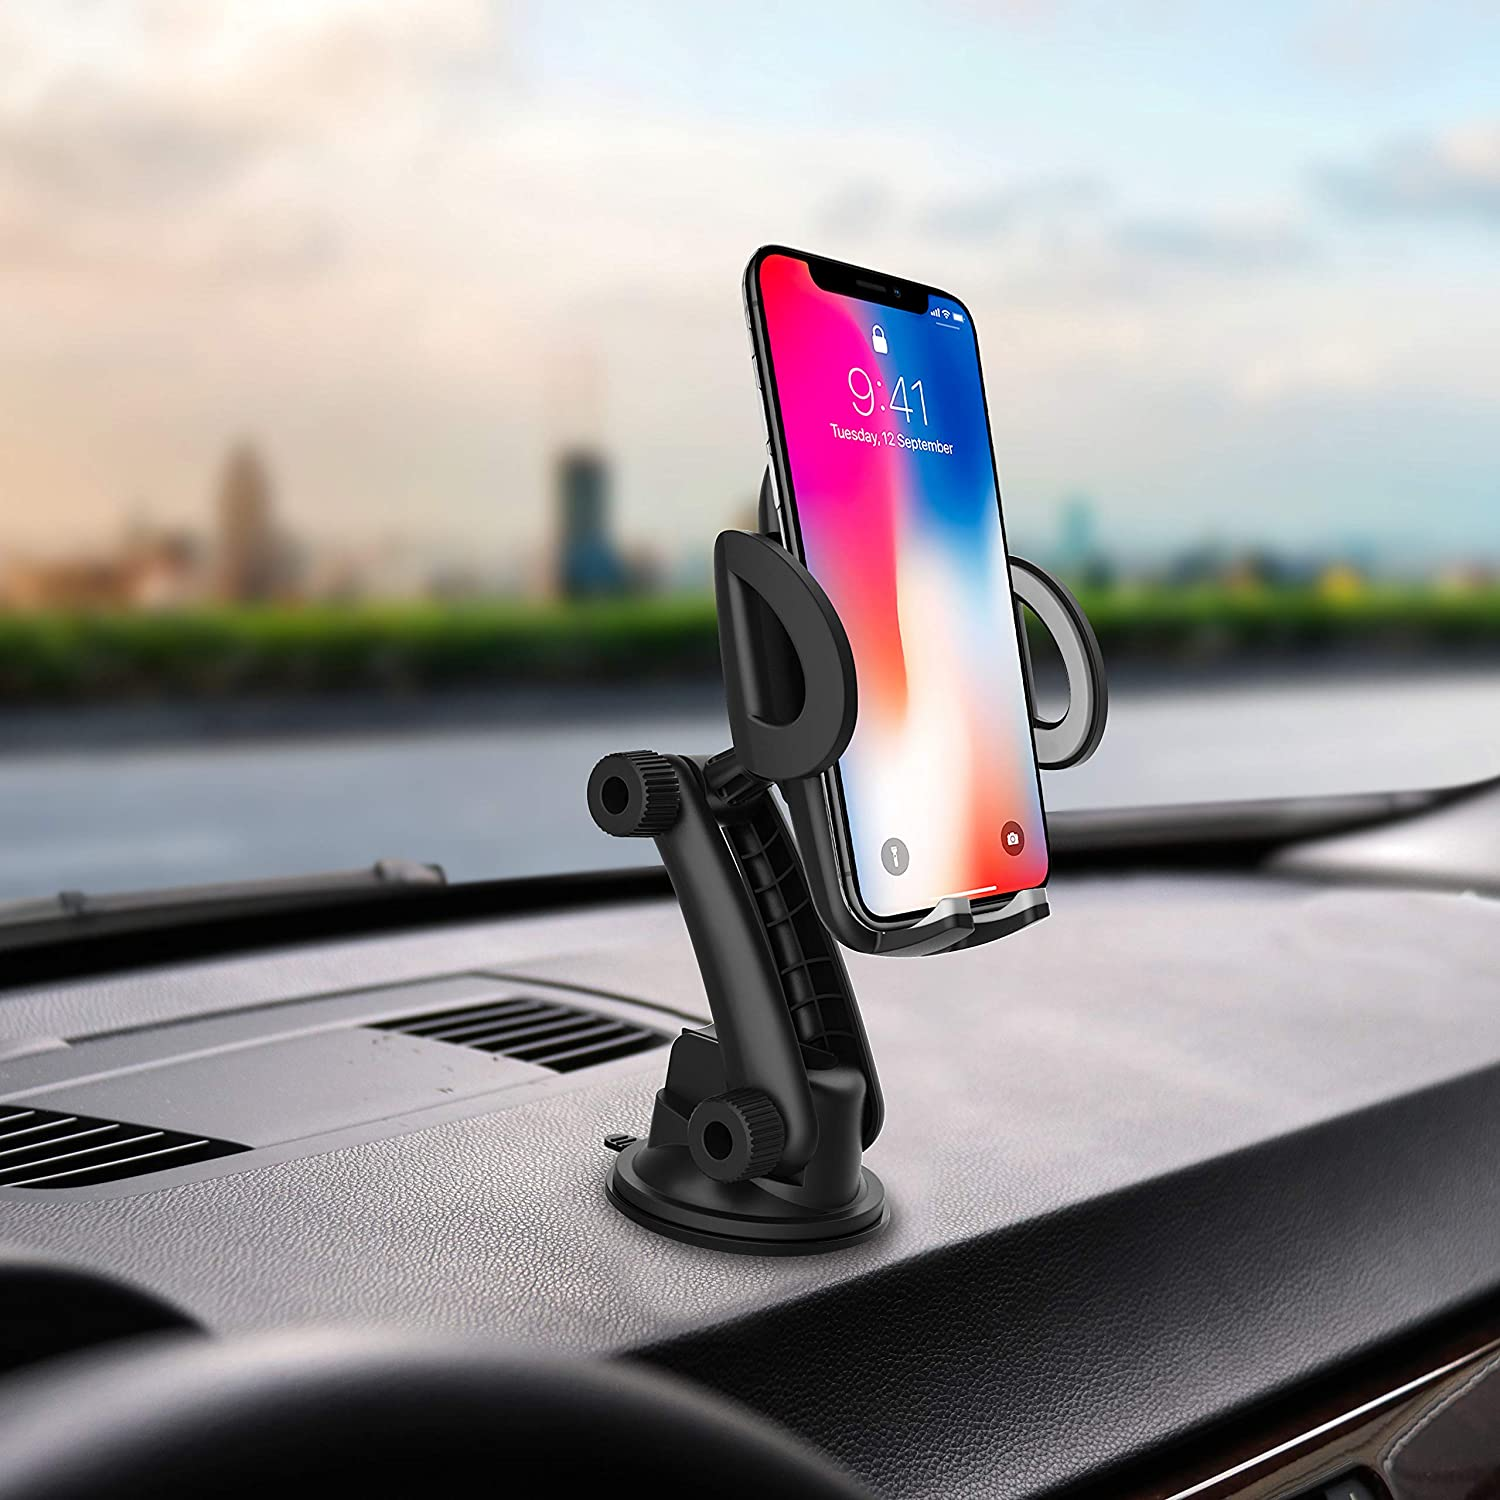 Universal Car Phone Mount/&Car Phone Holder,Fitting for All Phone and case Combinations from 50mm-95mm Width A Good Choice